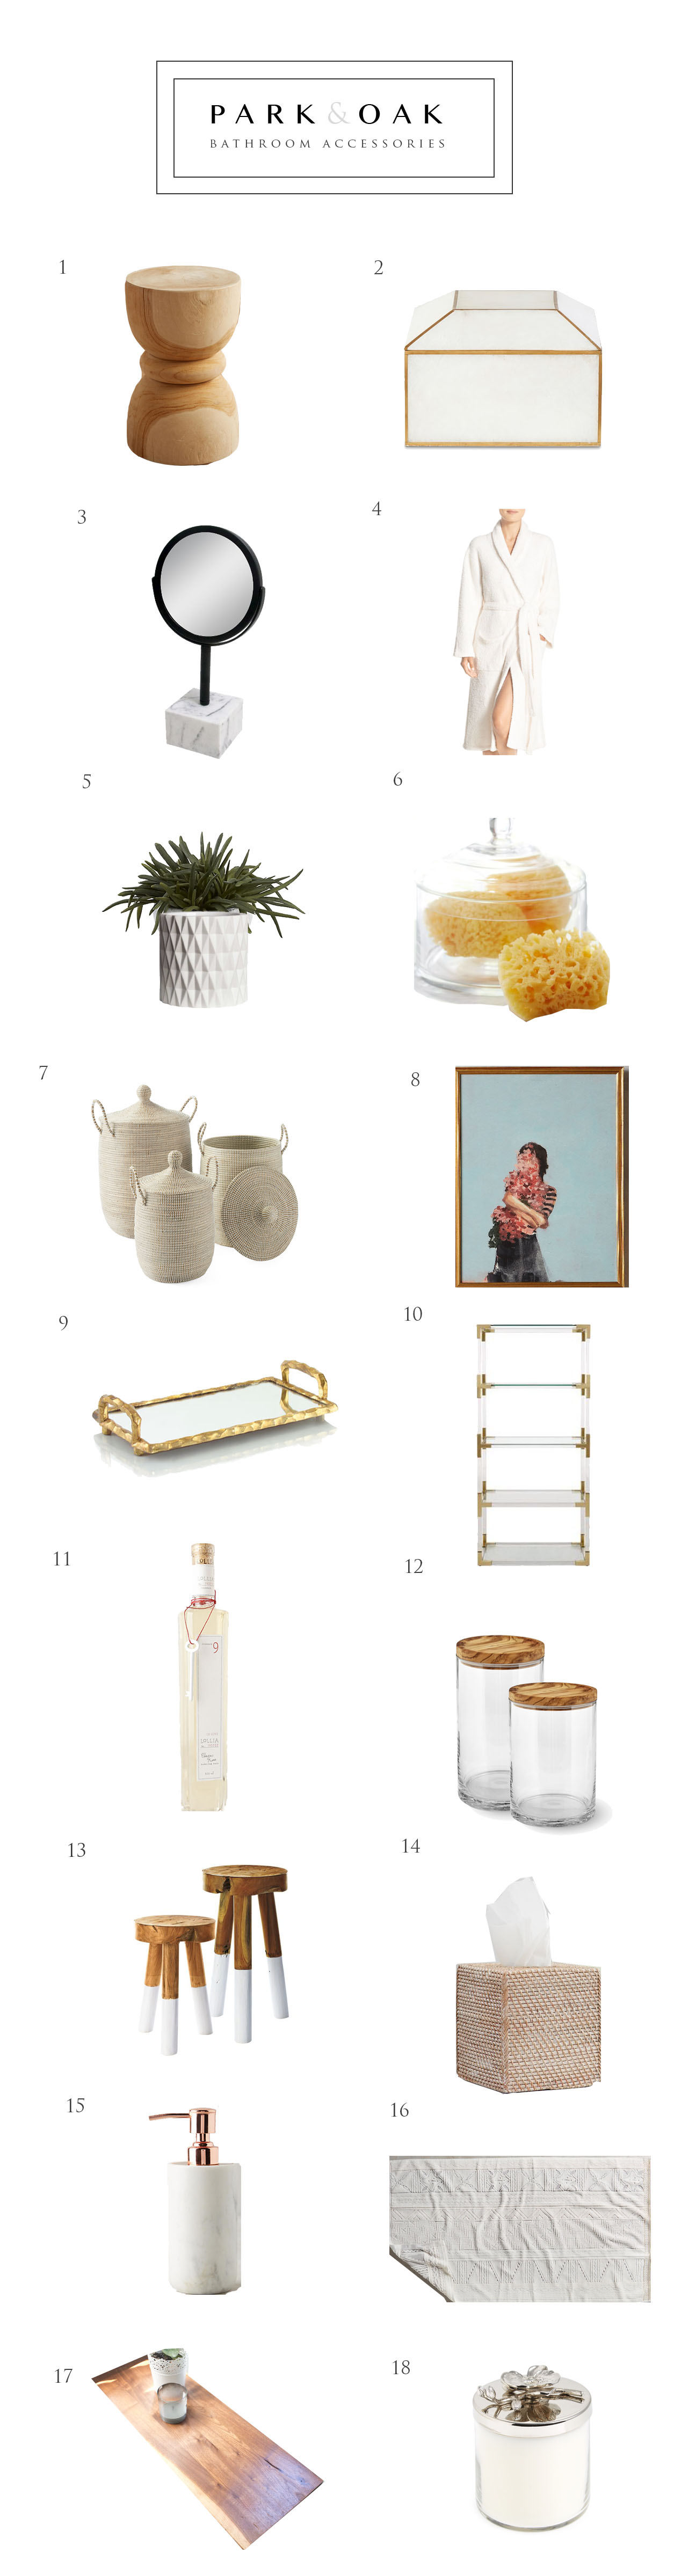 Park and Oak bathroom accessories